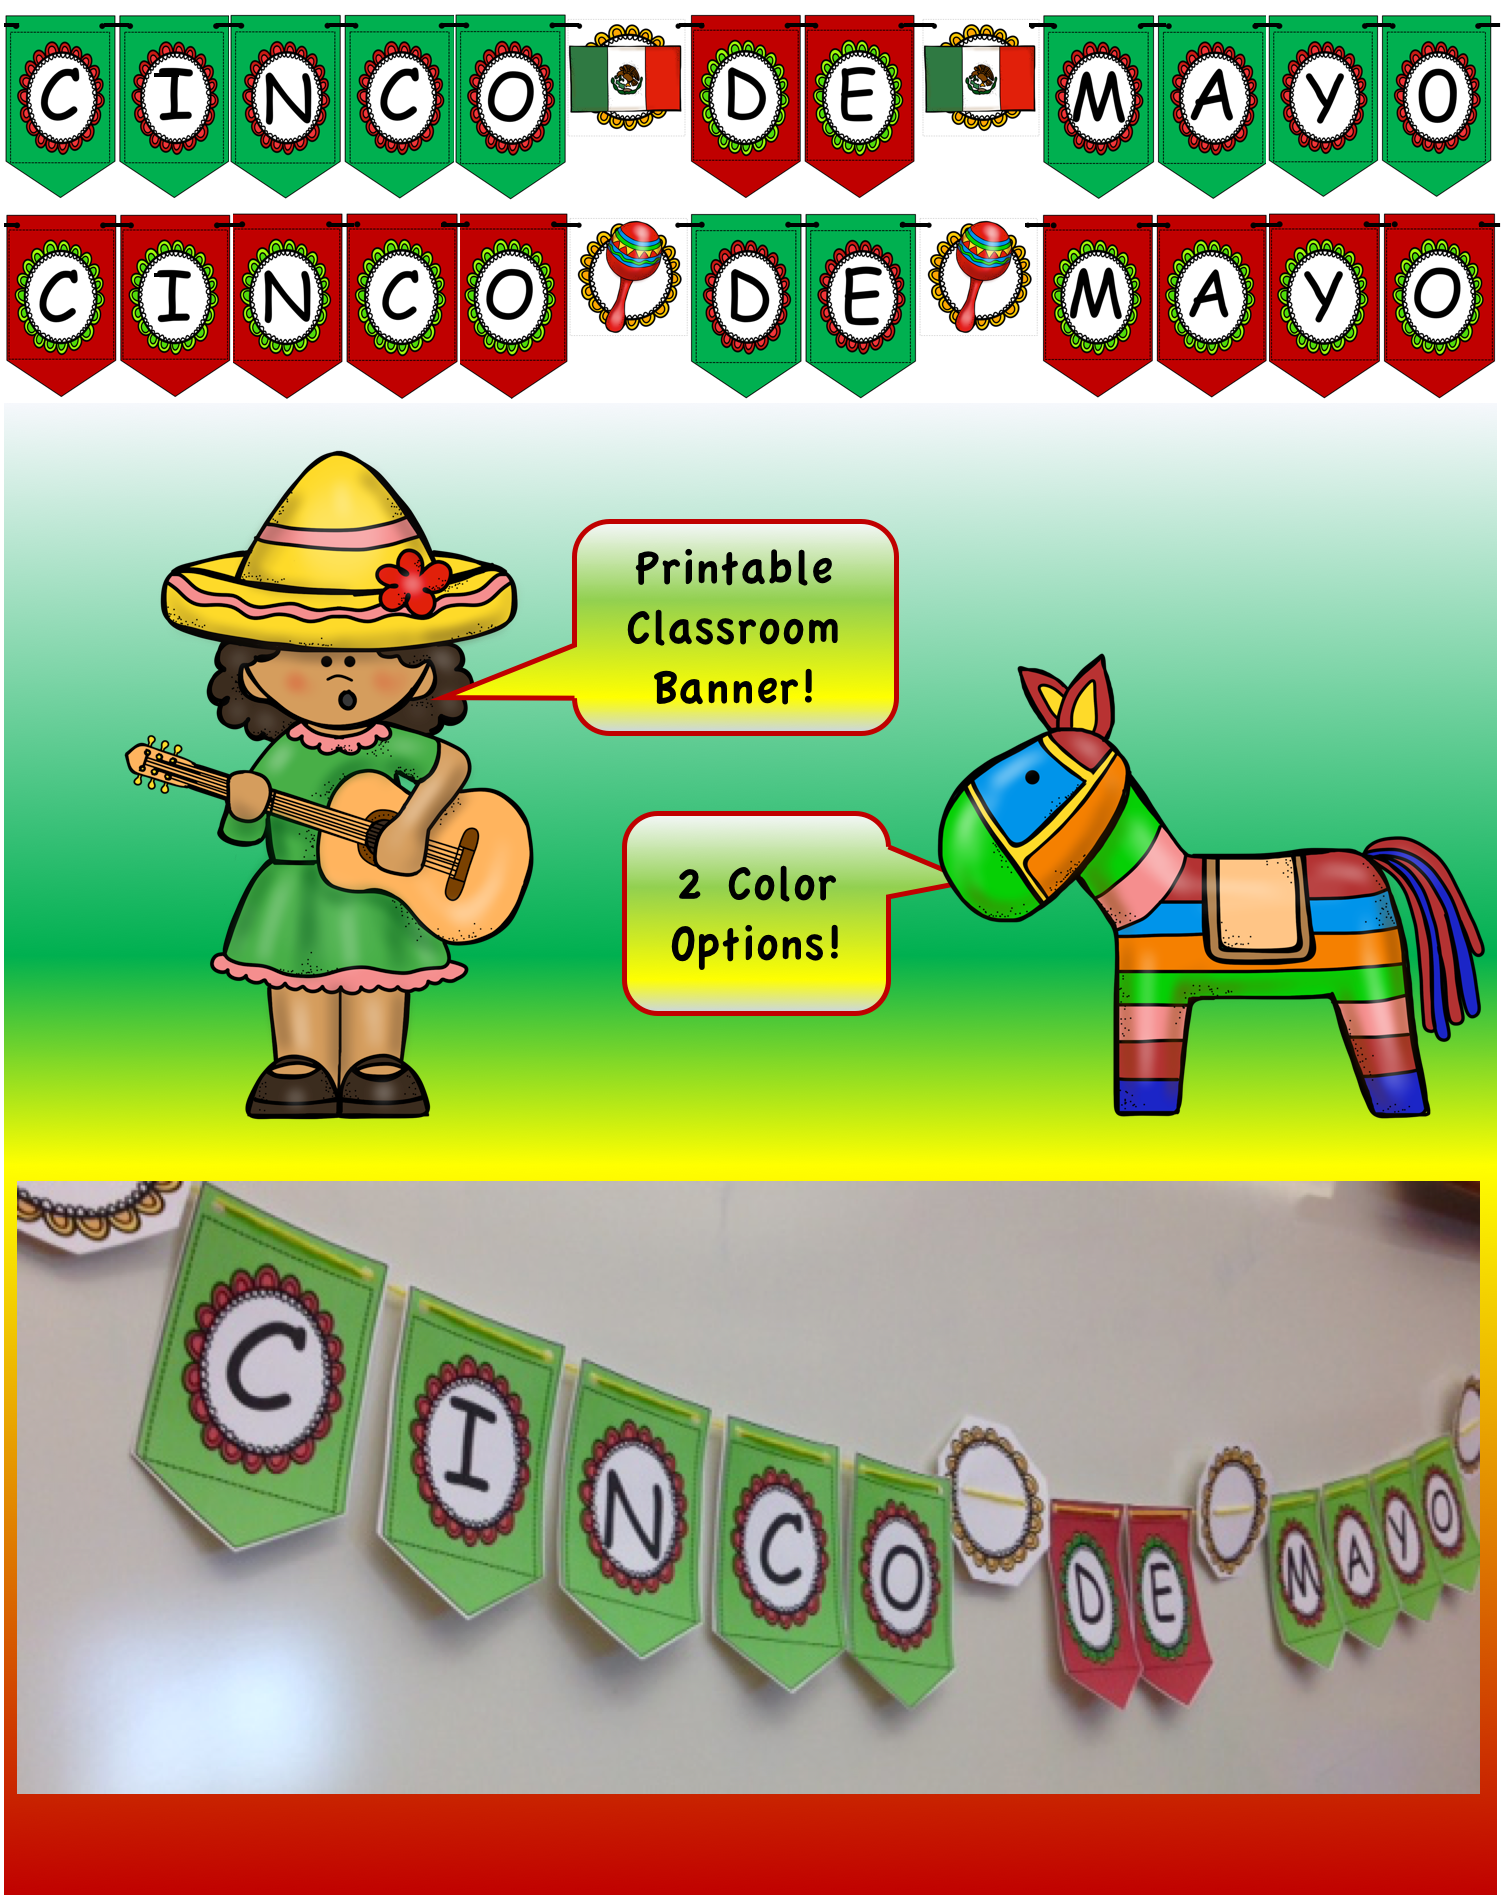 Cinco De Mayo Banner 2 Color Options With Images